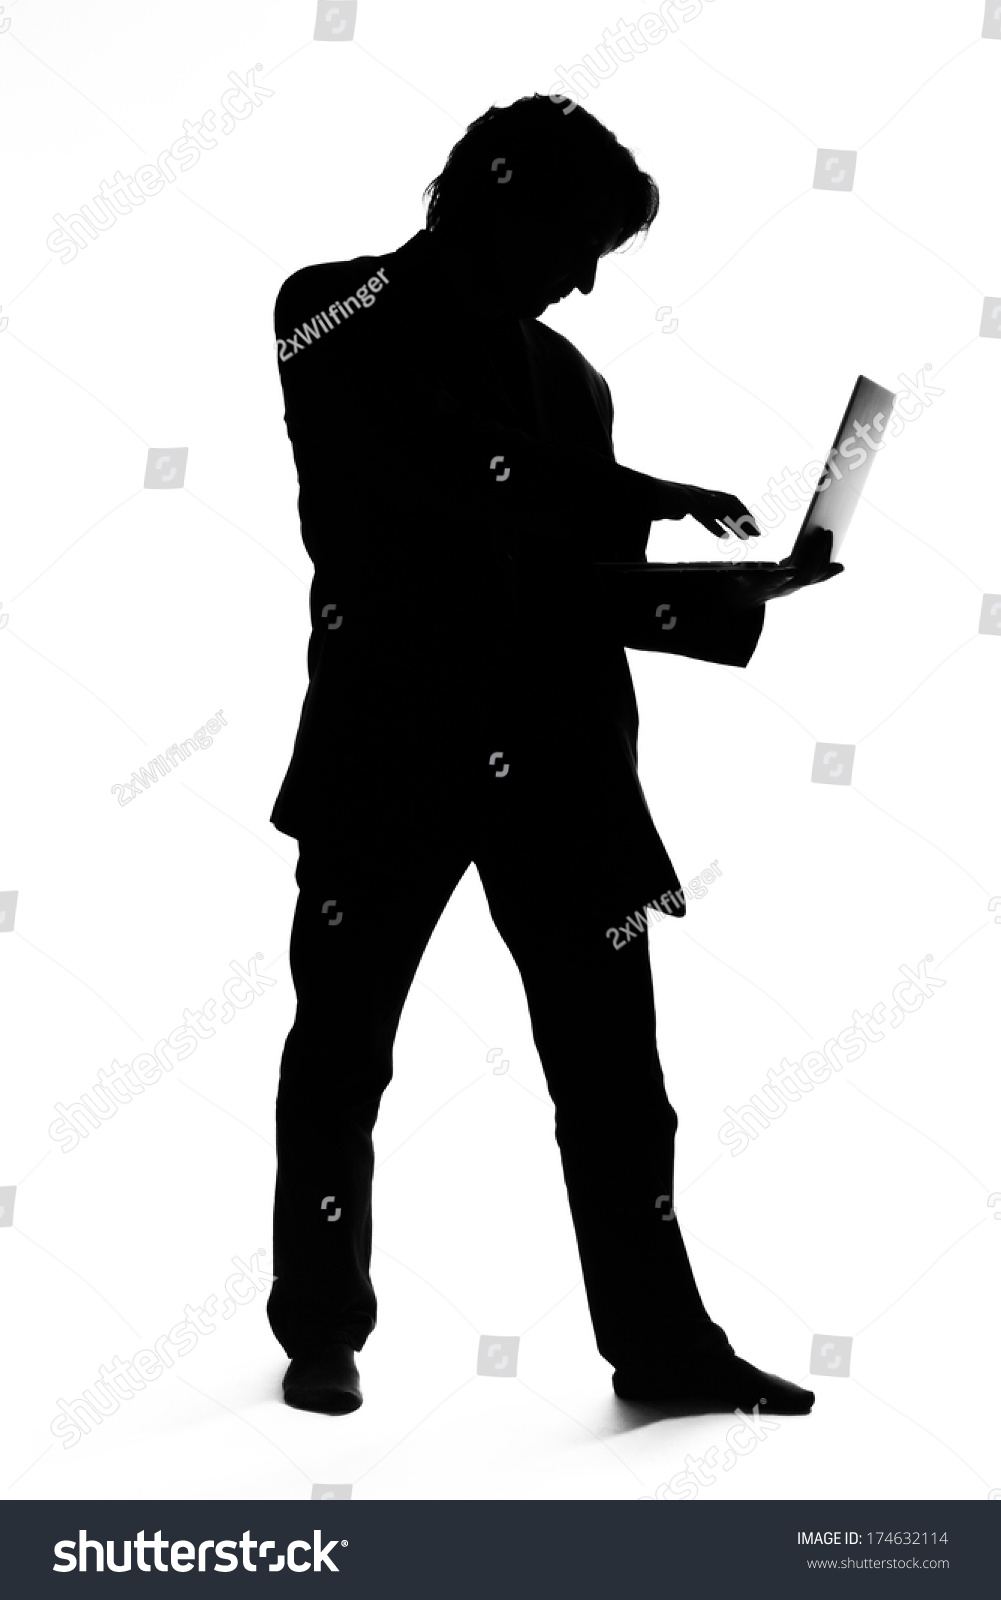 Silhouette Of A Man In Suit Typing On A Laptop Stock Photo ...